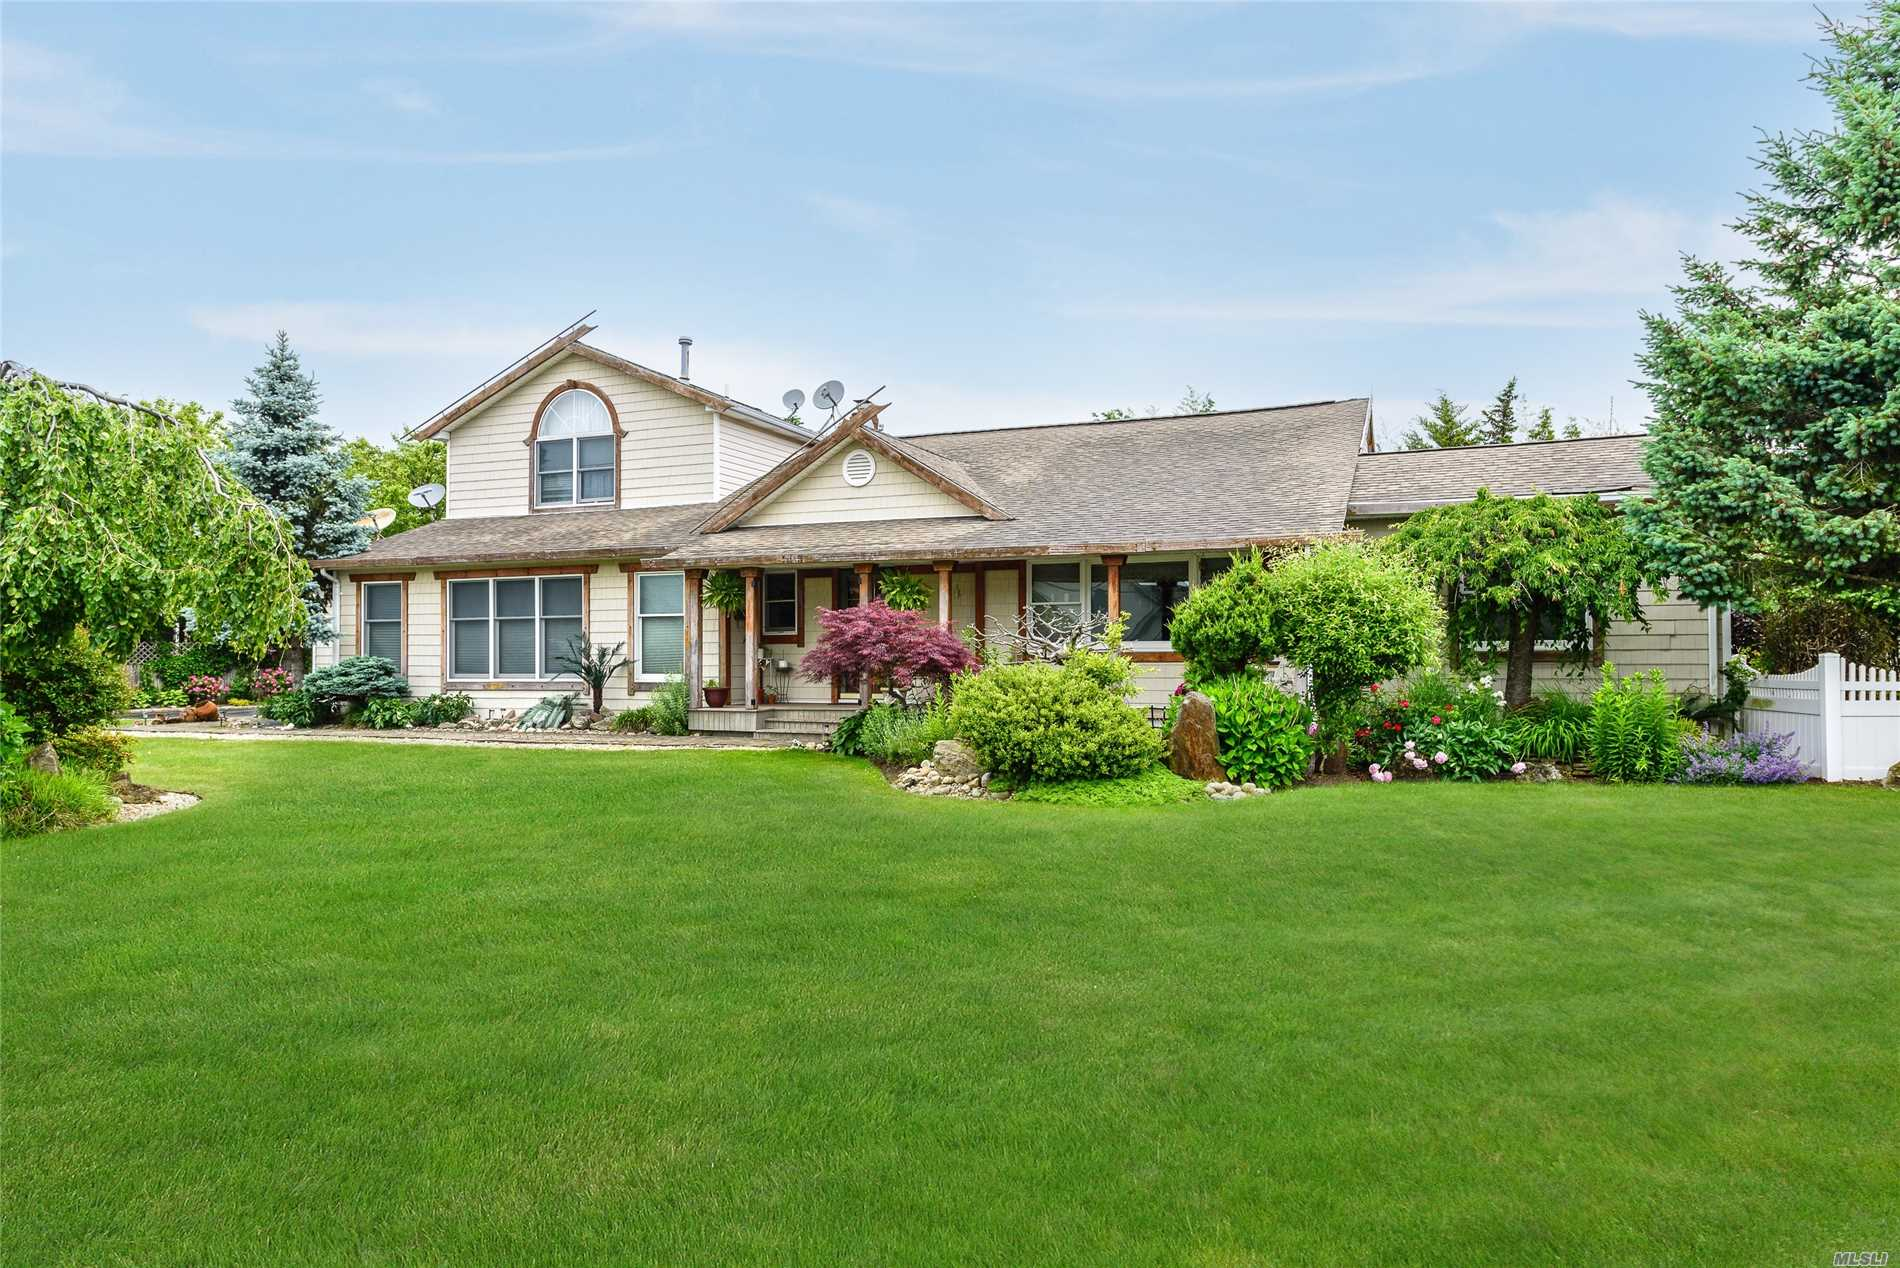 Photo of home for sale at 156 Secatogue Ln, West Islip NY